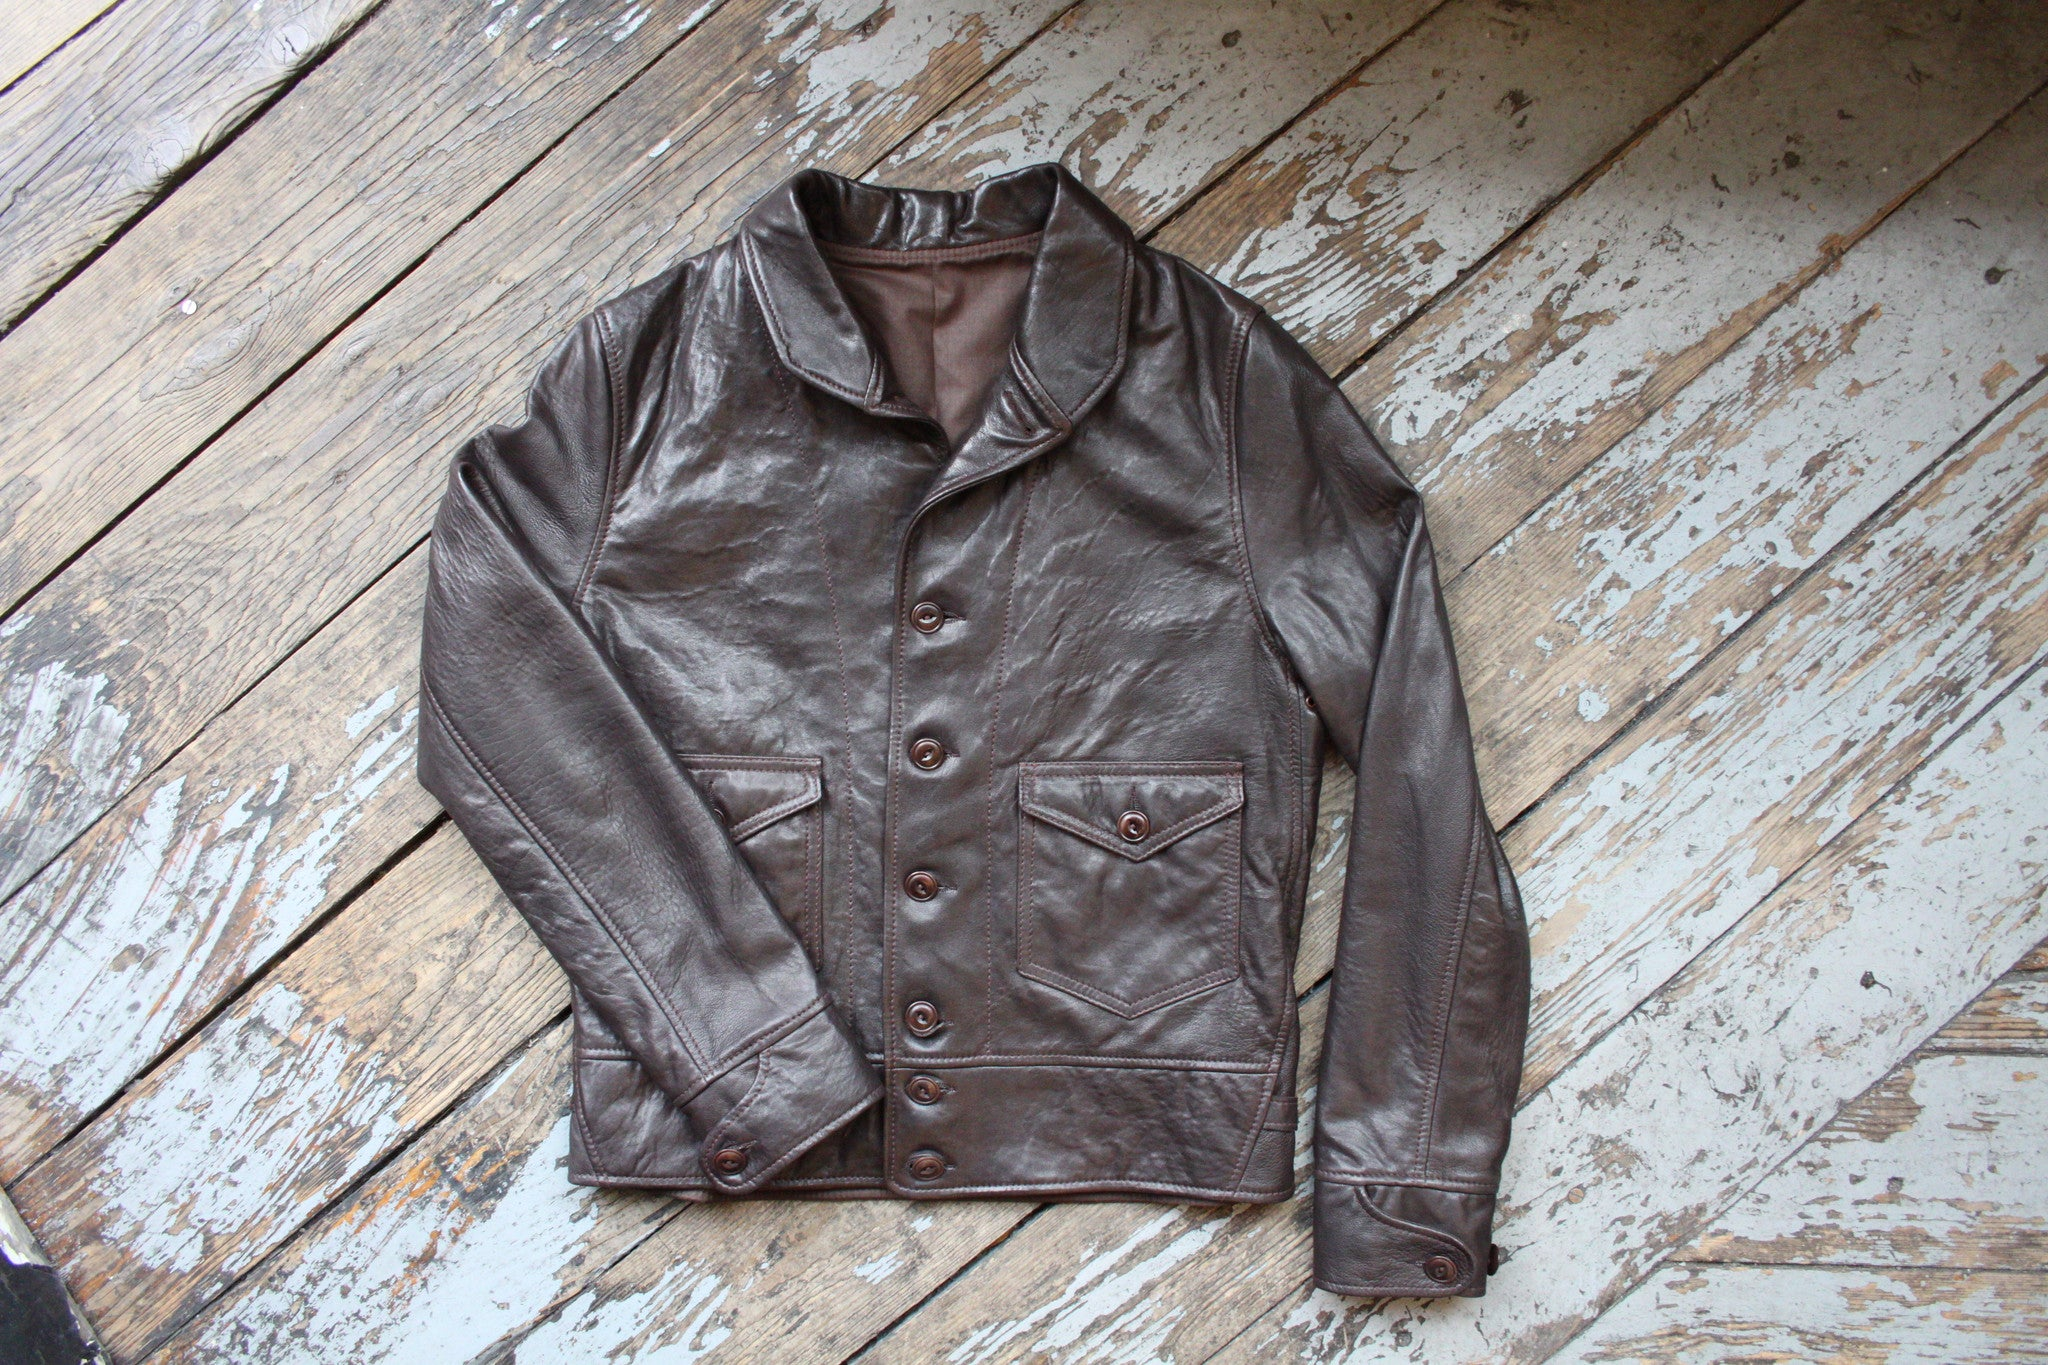 d6c3bc57cef Bill Kelso Cossack Capeskin Leather Jacket